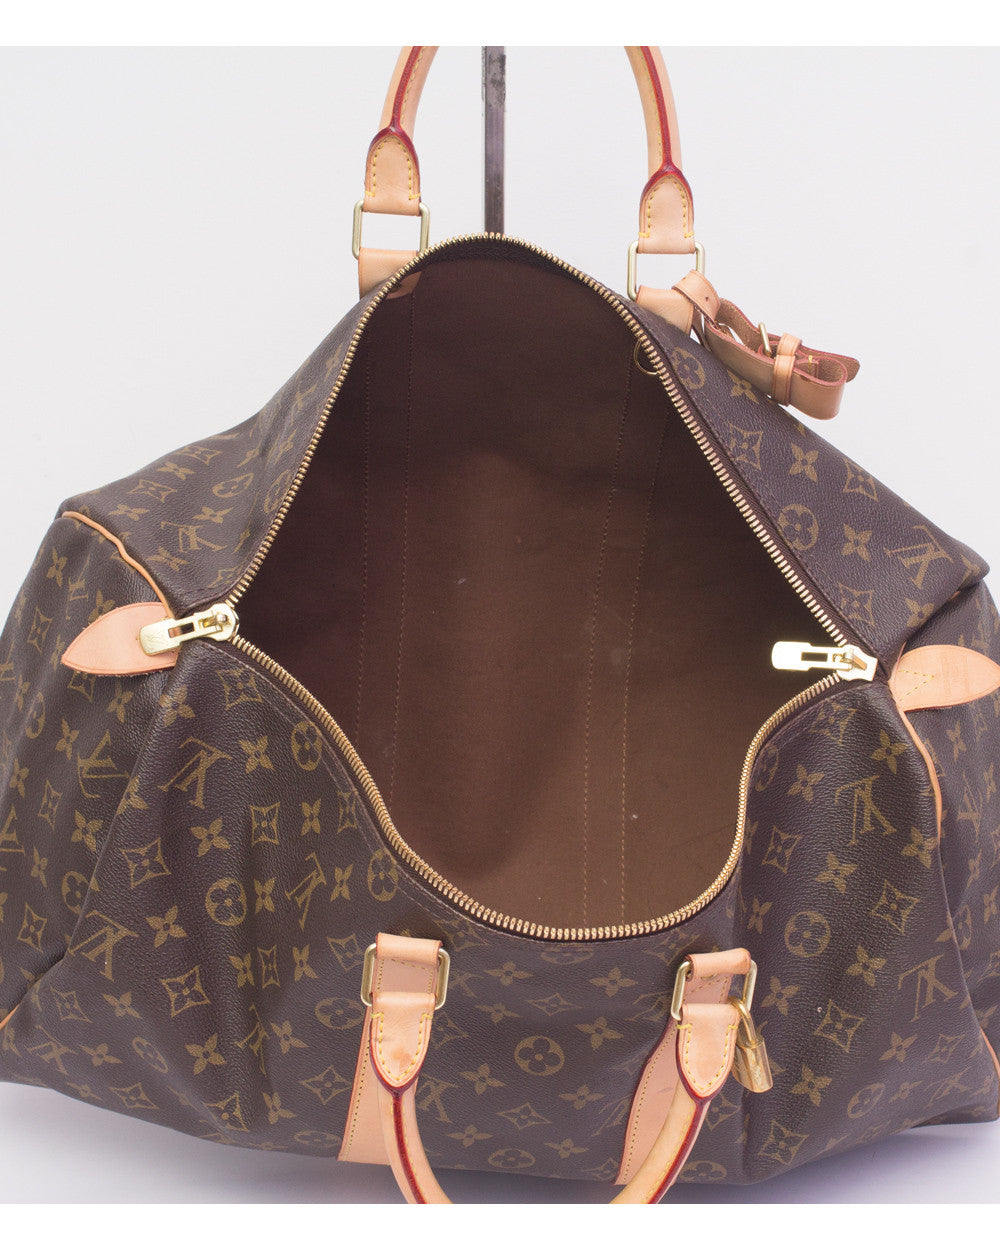 Louis Vuitton Keepall Bag 45